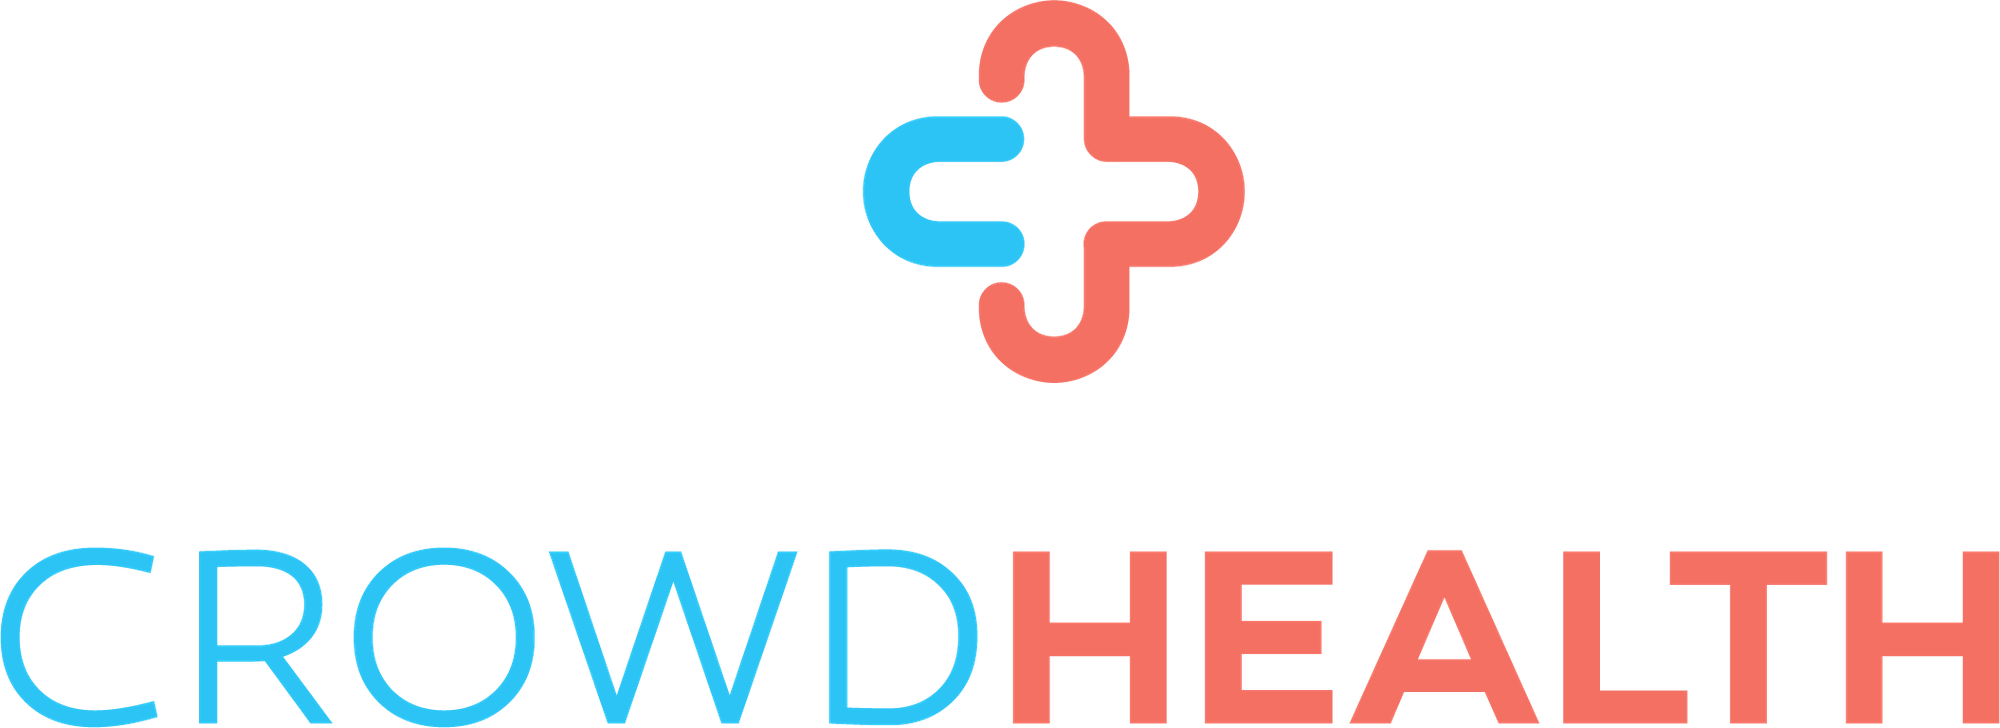 CrowdHealth logo